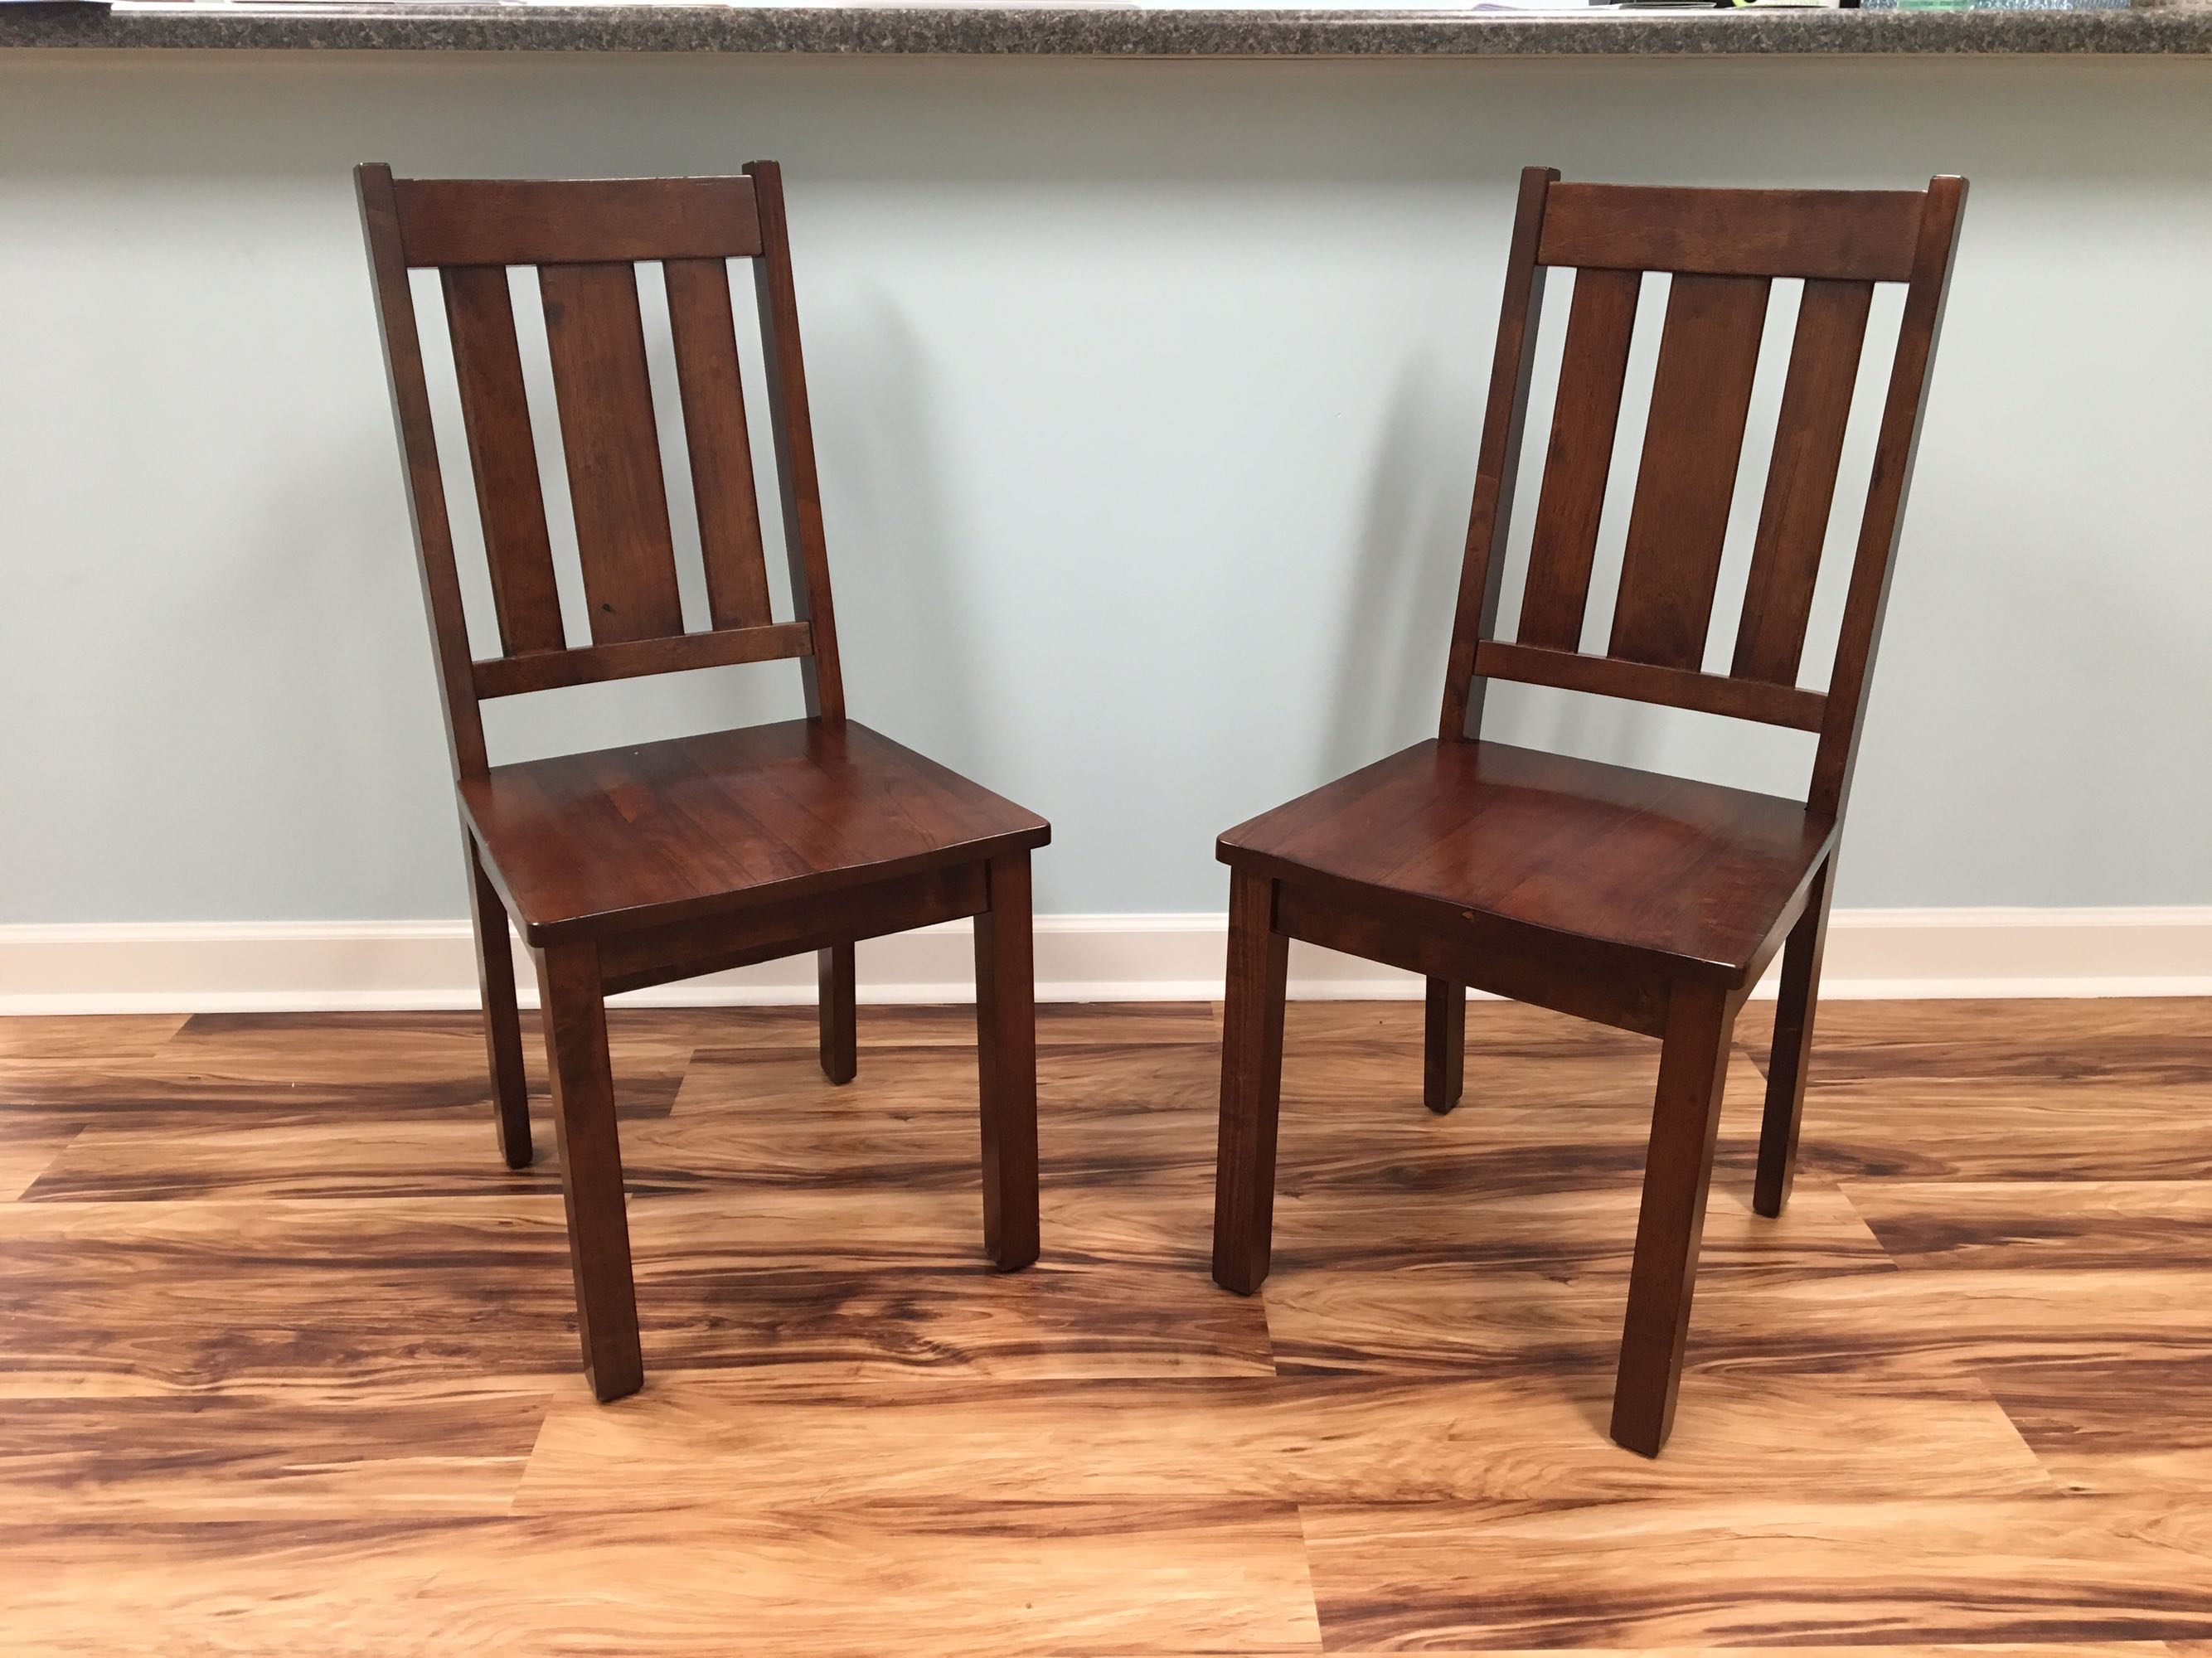 Solid wood chairs. Perfect condition. $45 for the set